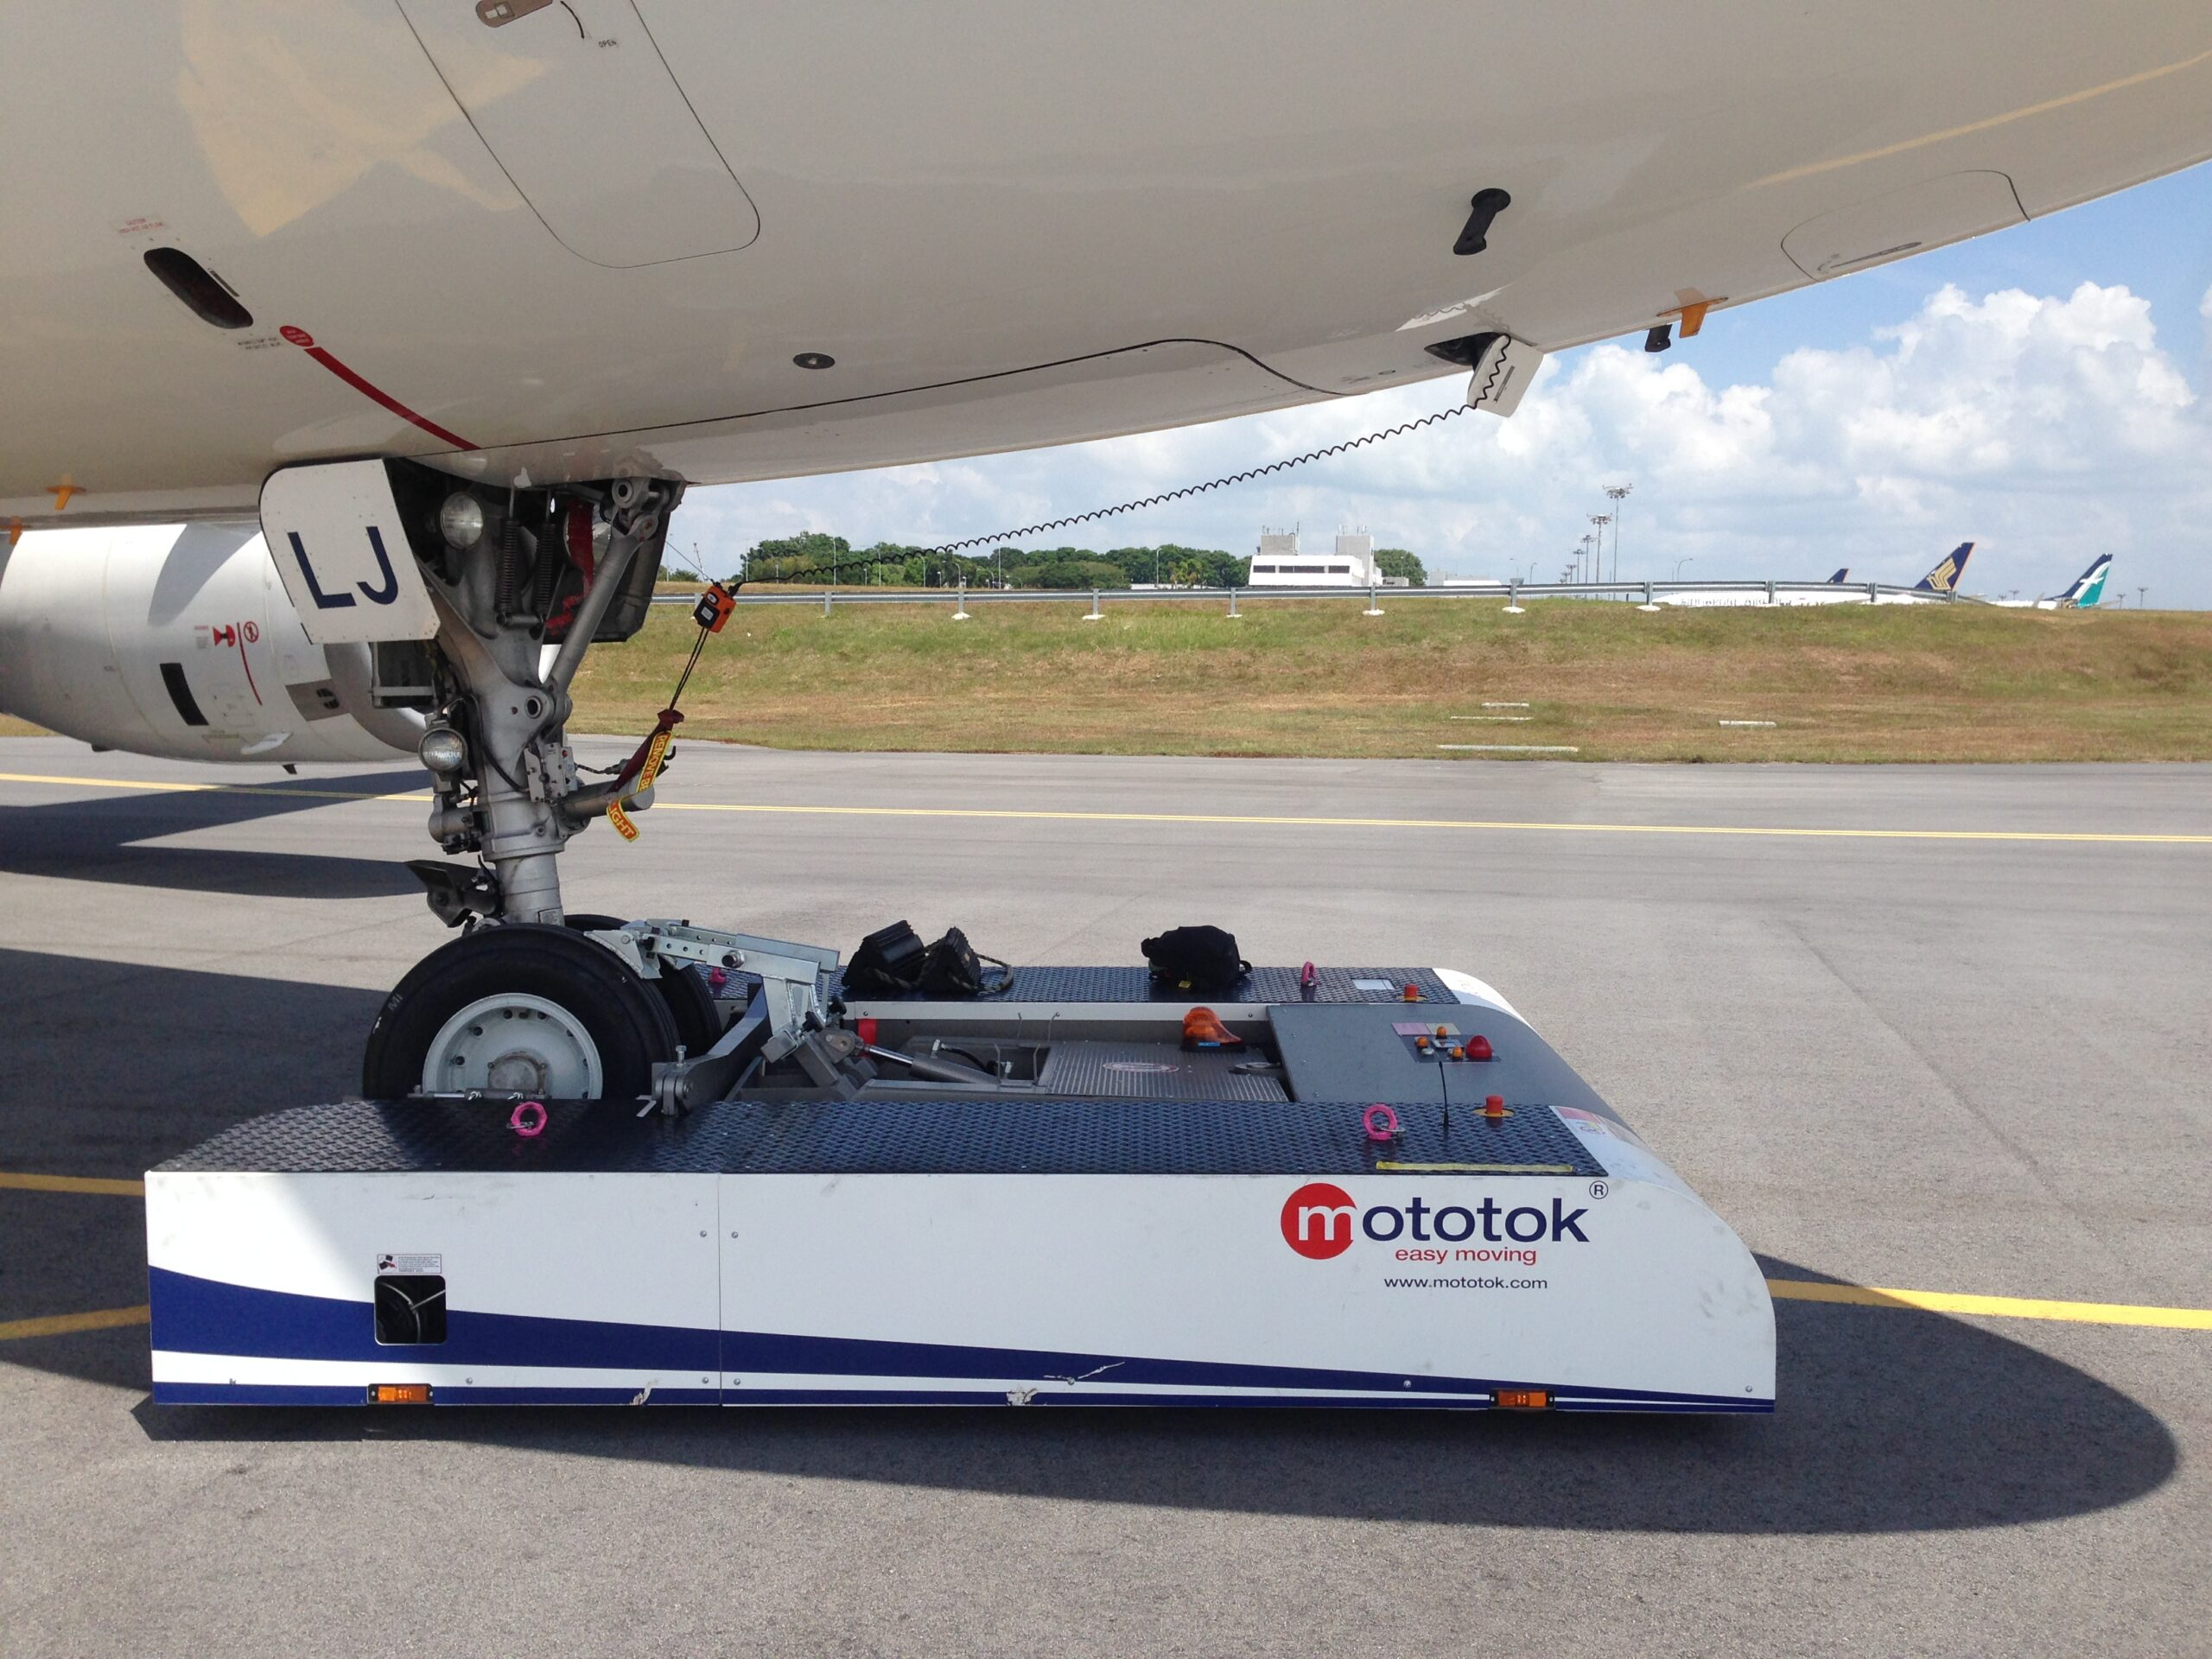 Remote-controlled tugs for #aircraft. @JobToRob: #news: Jobs to #Robots! #Work for Robots! Hire Robots!